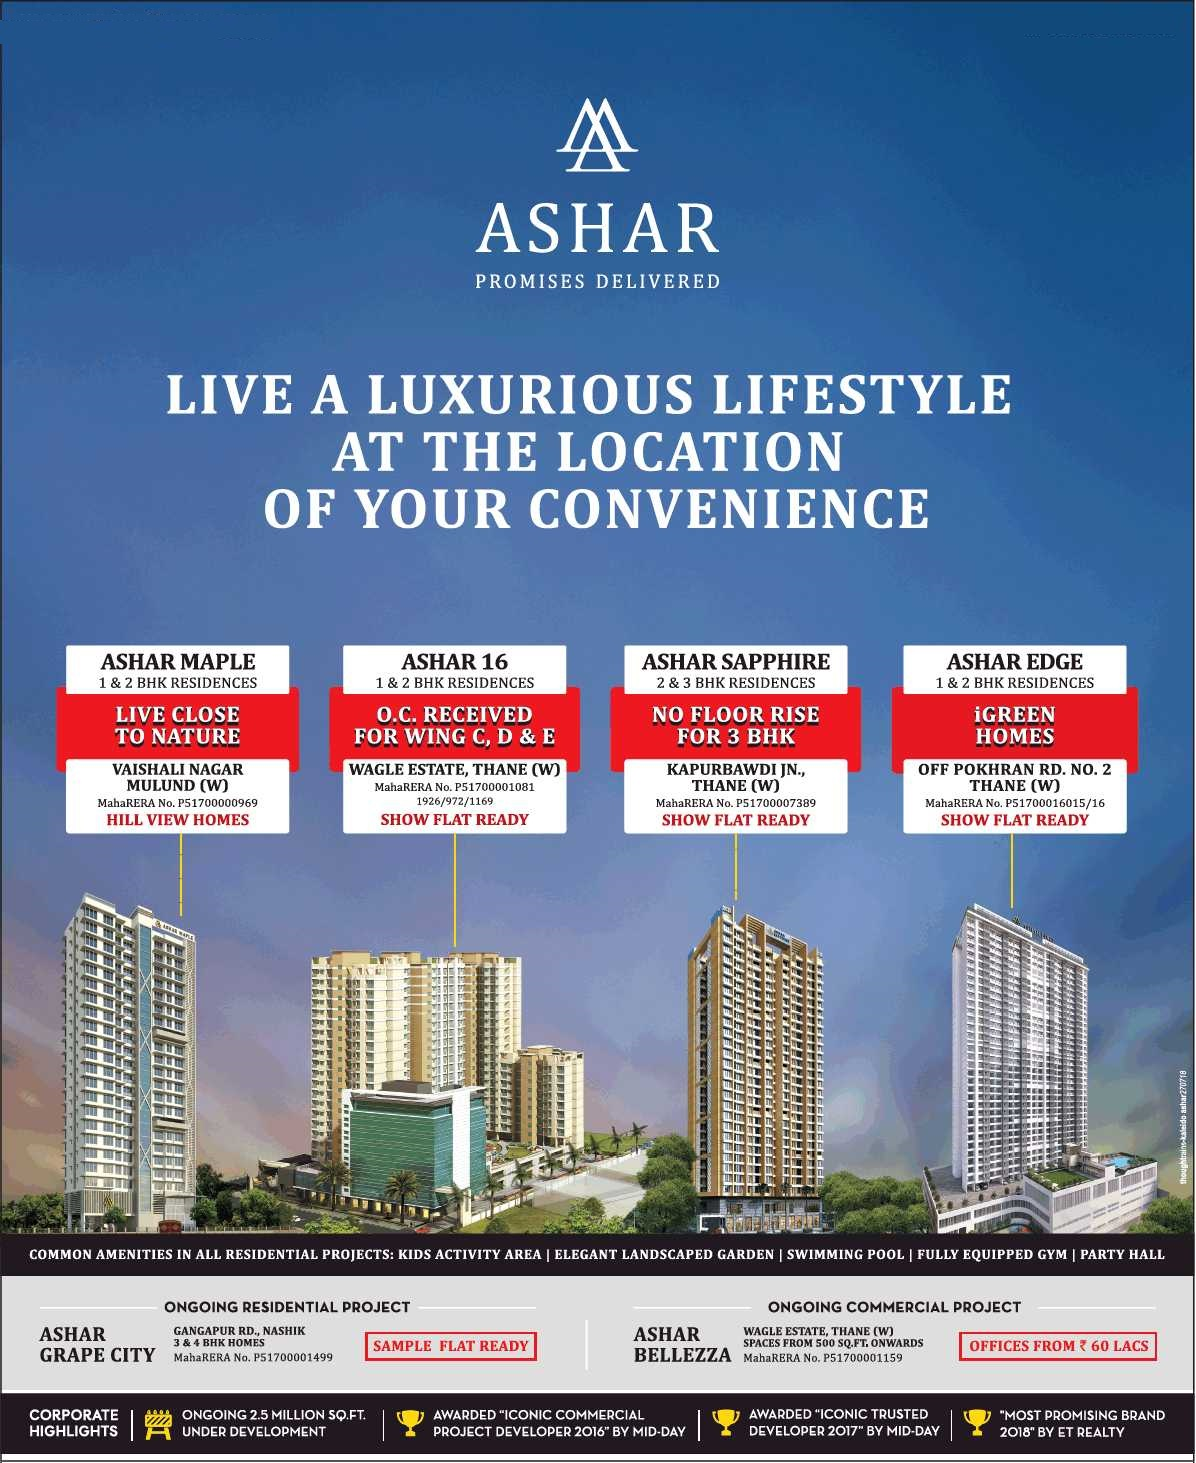 Live a luxurious lifestyle at the location of your convenience at Ashar Projects in Mumbai